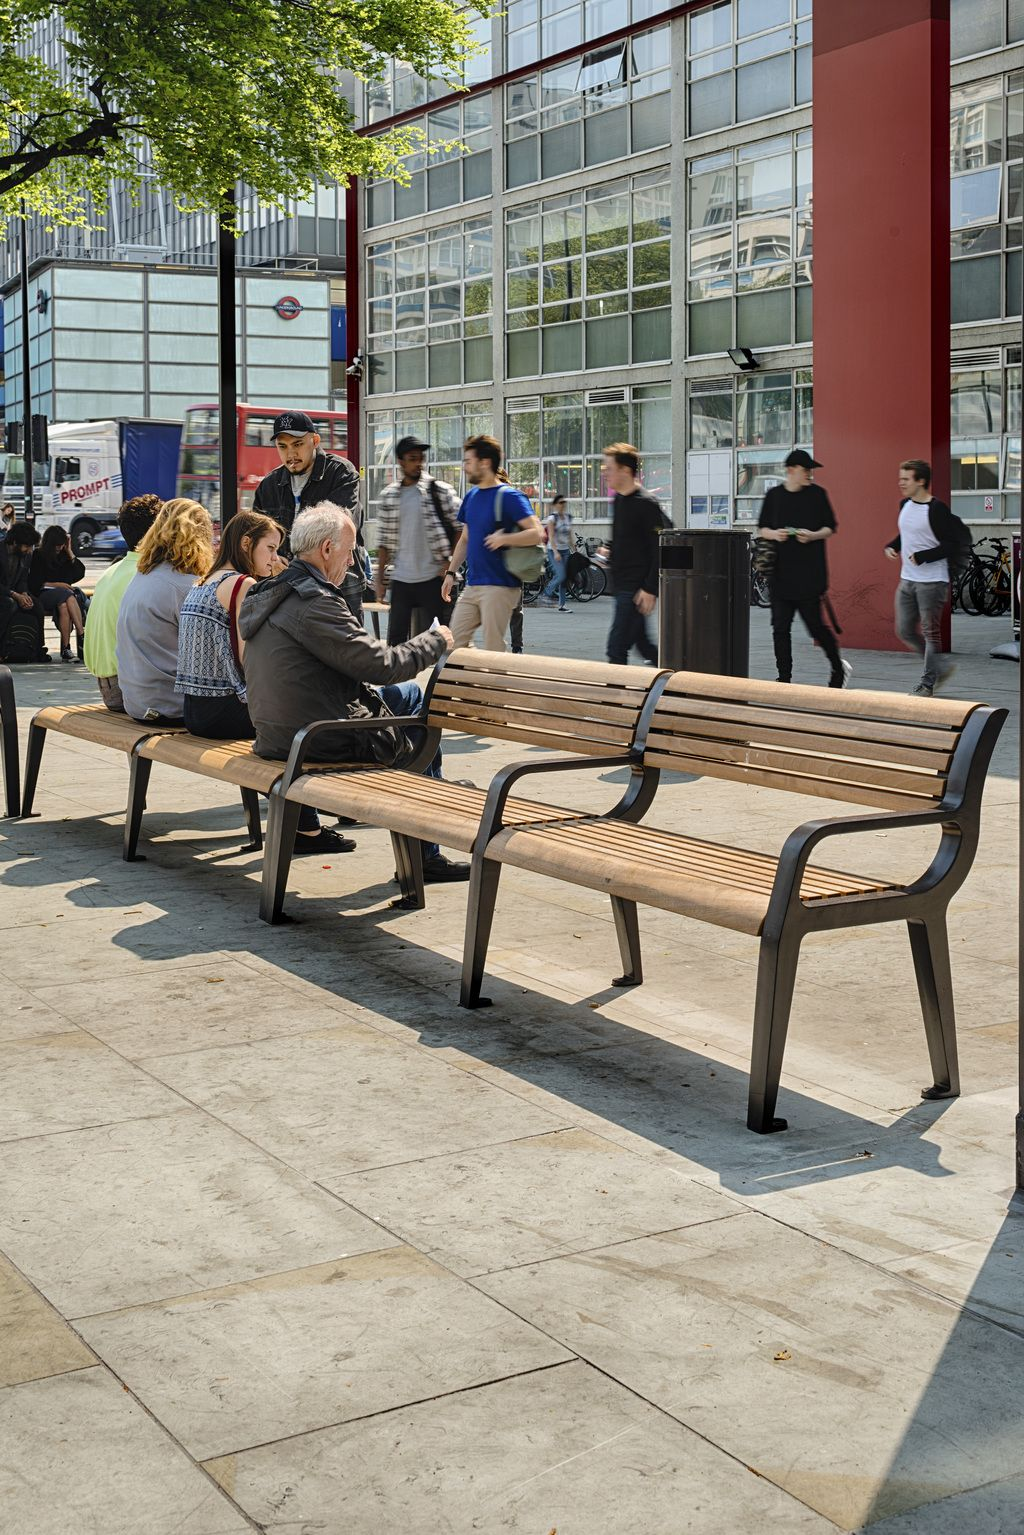 Marshalls   Street Furniture: Bespoke Public Seating To Encourage Social  Interaction 2 Of 4